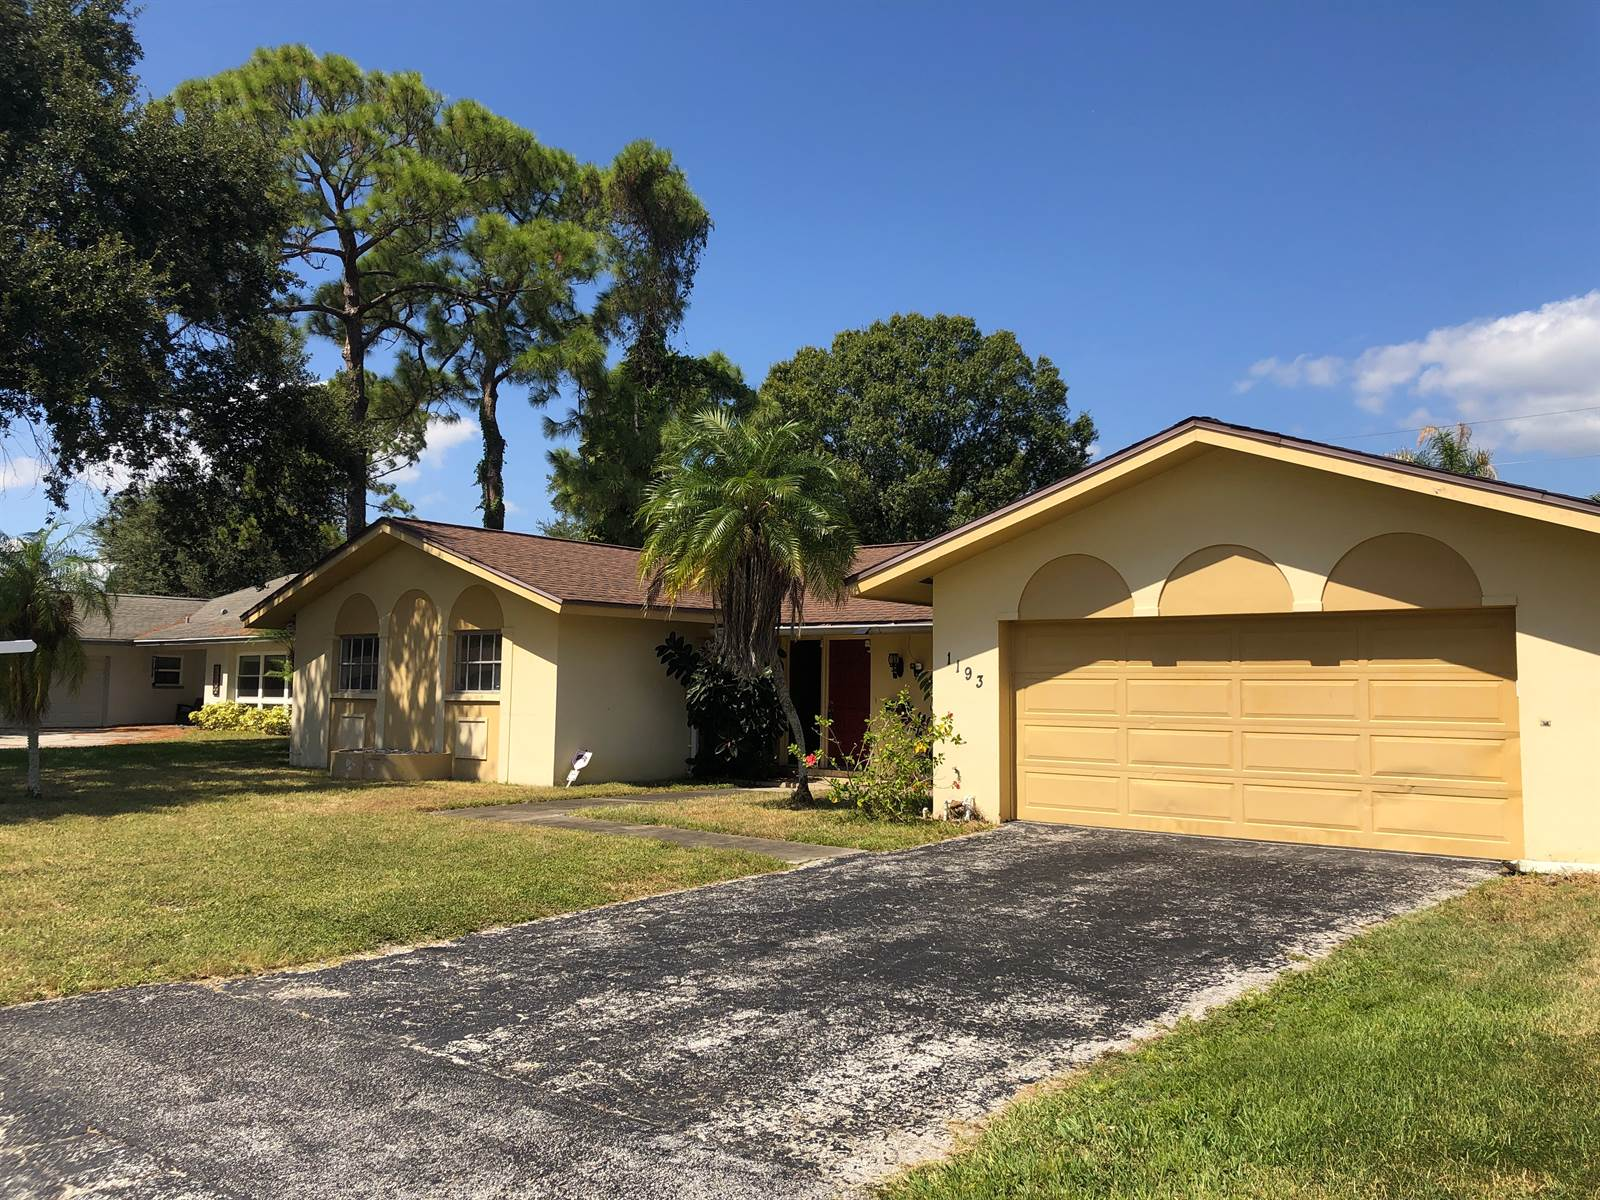 1193 88TH Avenue North, Saint Petersburg, FL 33702